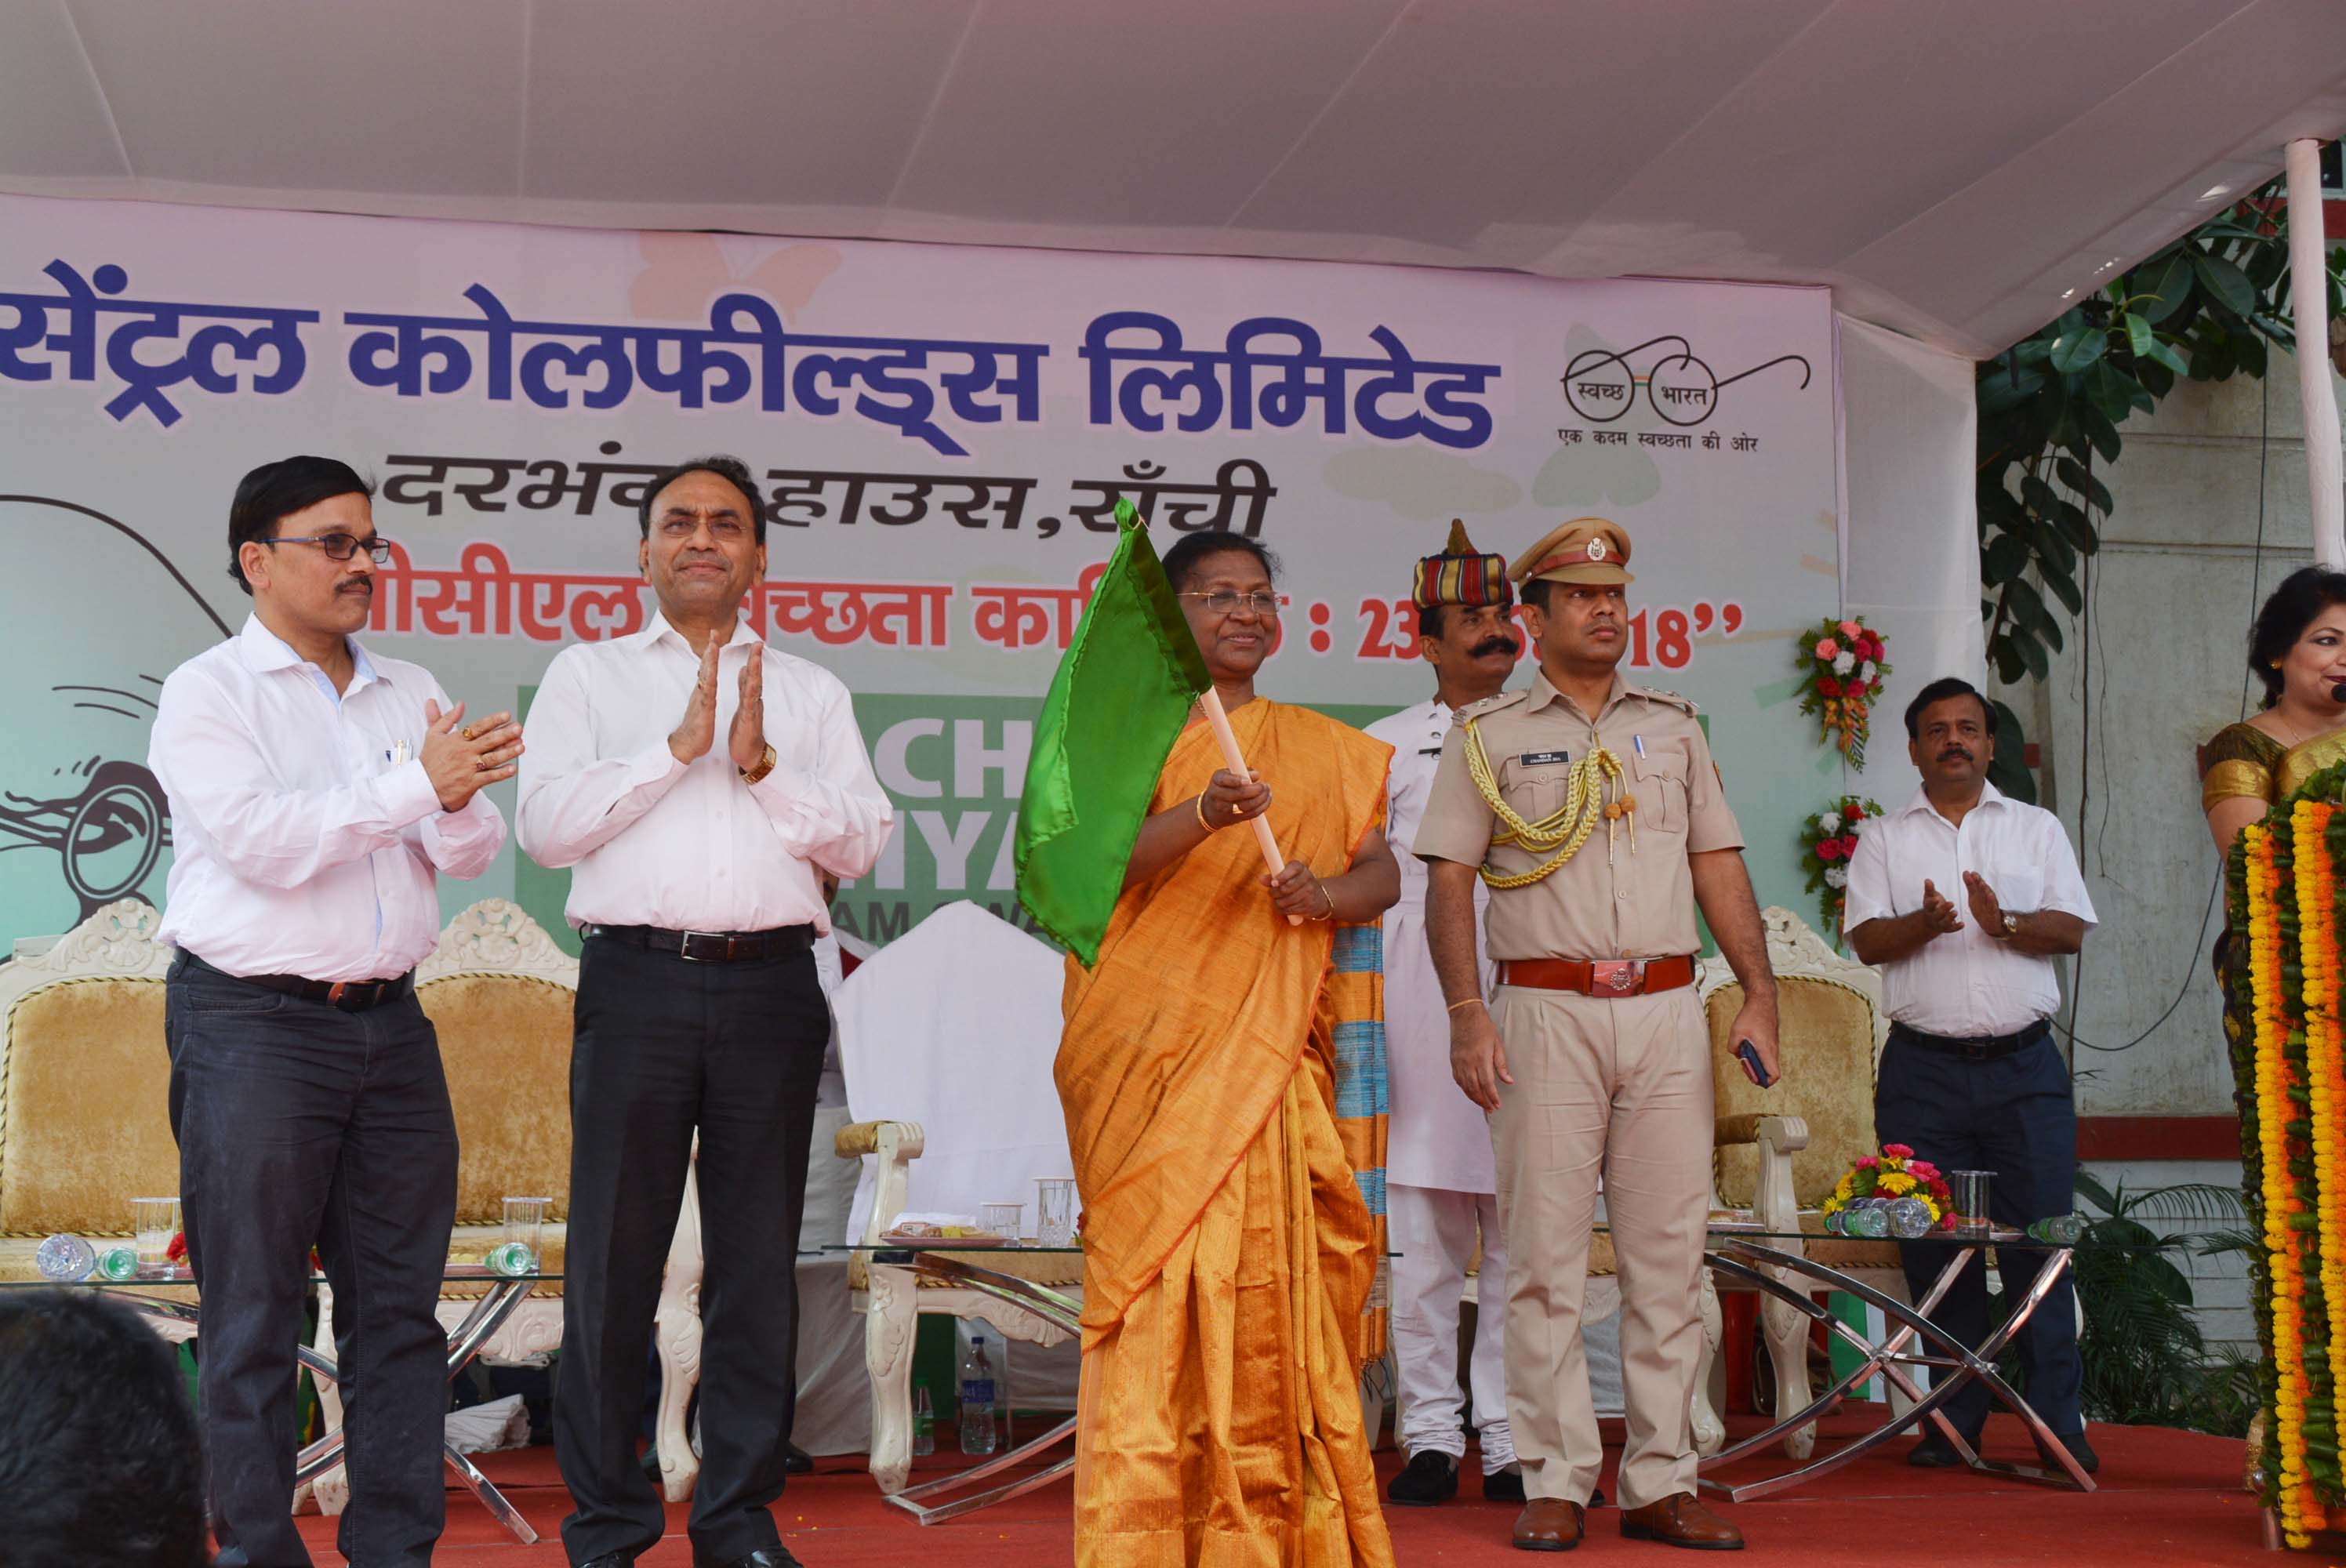 <p>Governor Droupadi Murmu along with CCL CMD Gopal Singh and others during Cleanliness Carnival at CCL Darbhanga House in Ranchi on Saturday.</p>